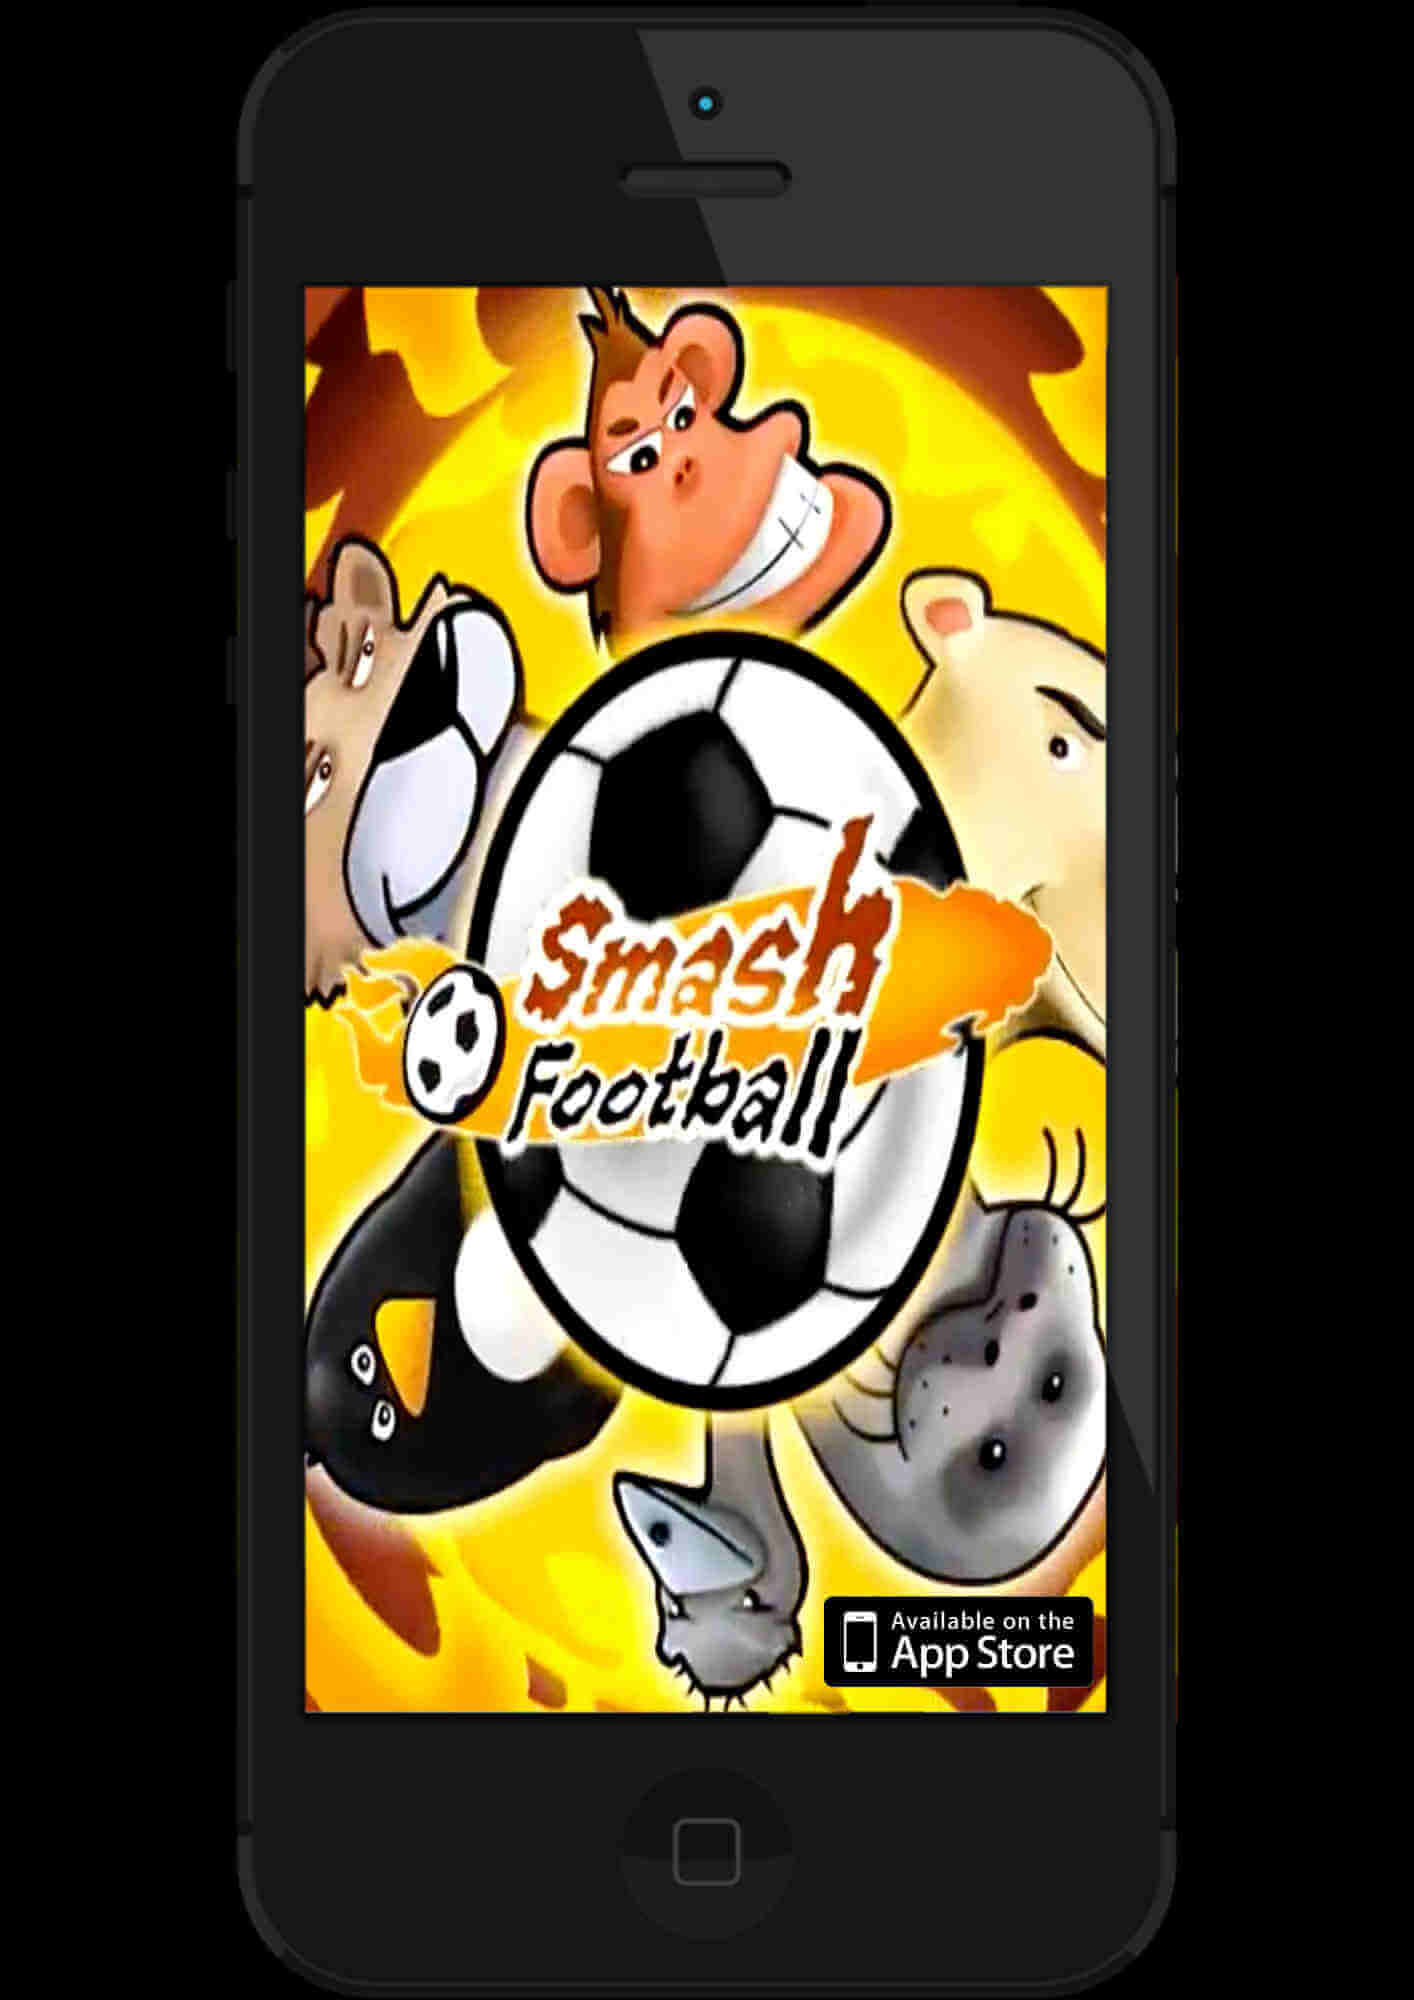 smash football game poster